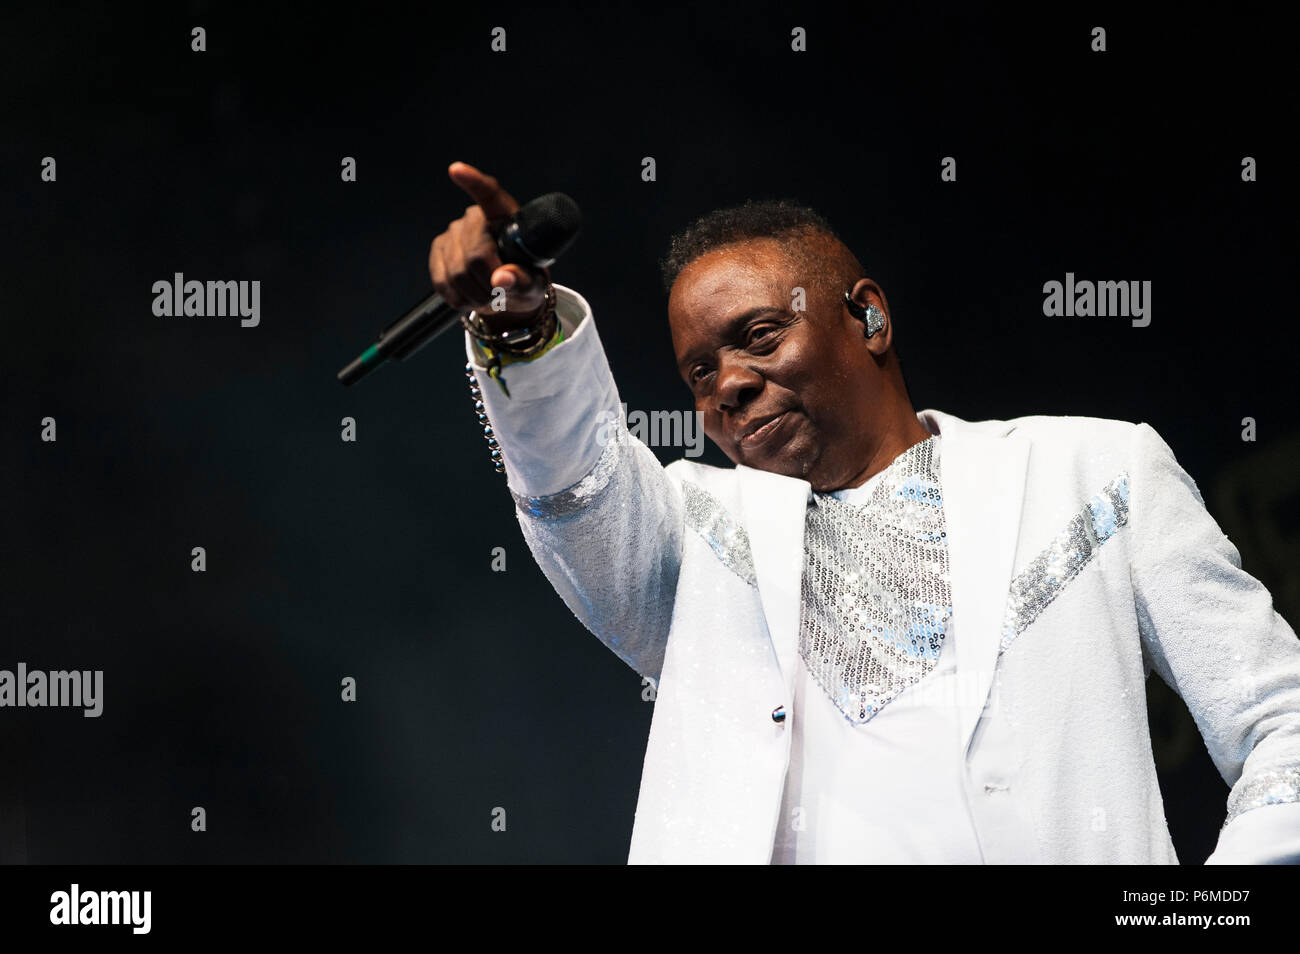 Glynde, East Sussex, 1st July 2018. Love Supreme Jazz Festival. Earth Wind & Fire close the Main Stage on the final night of Love Supreme Jazz Festival. Credit: Francesca Moore/Alamy Live News - Stock Image